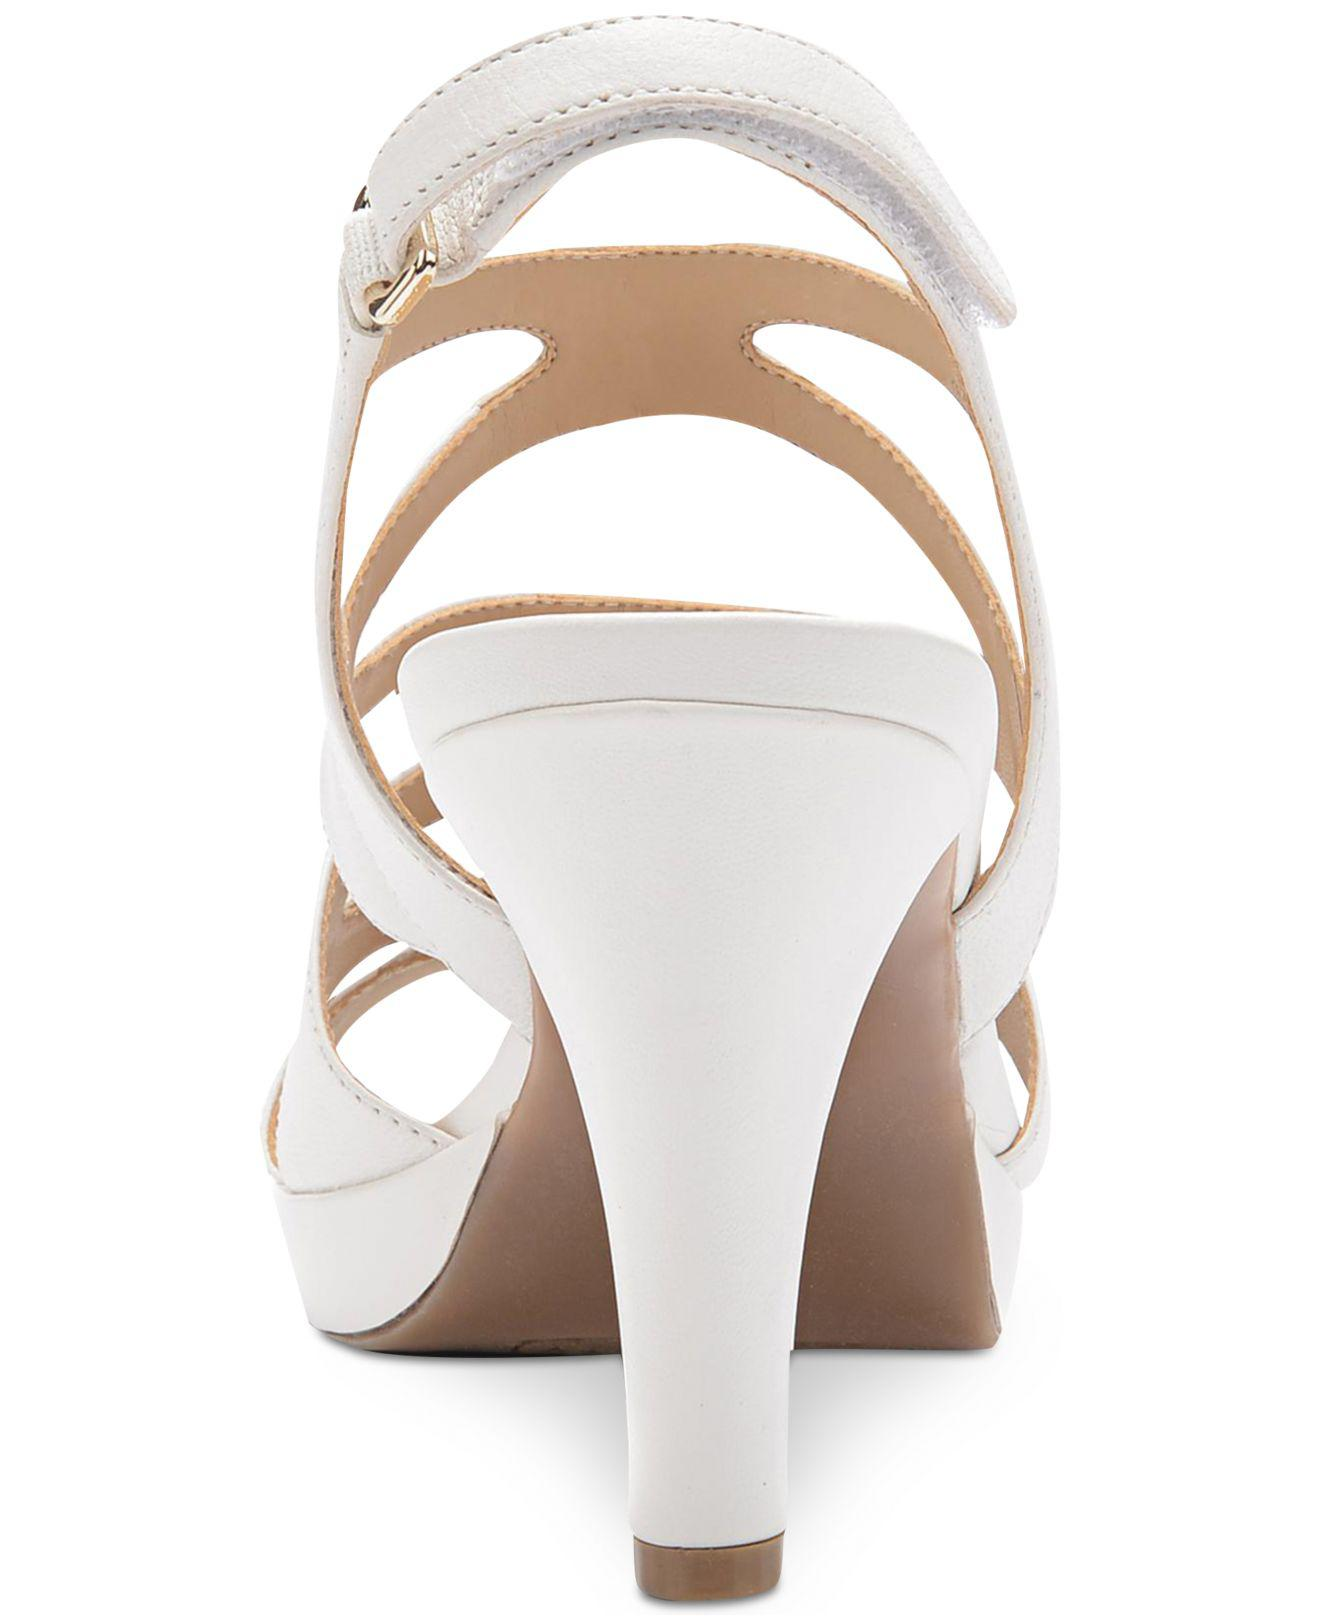 722f30d03fc Naturalizer - White Pressely Platform Dress Sandal - Lyst. View fullscreen